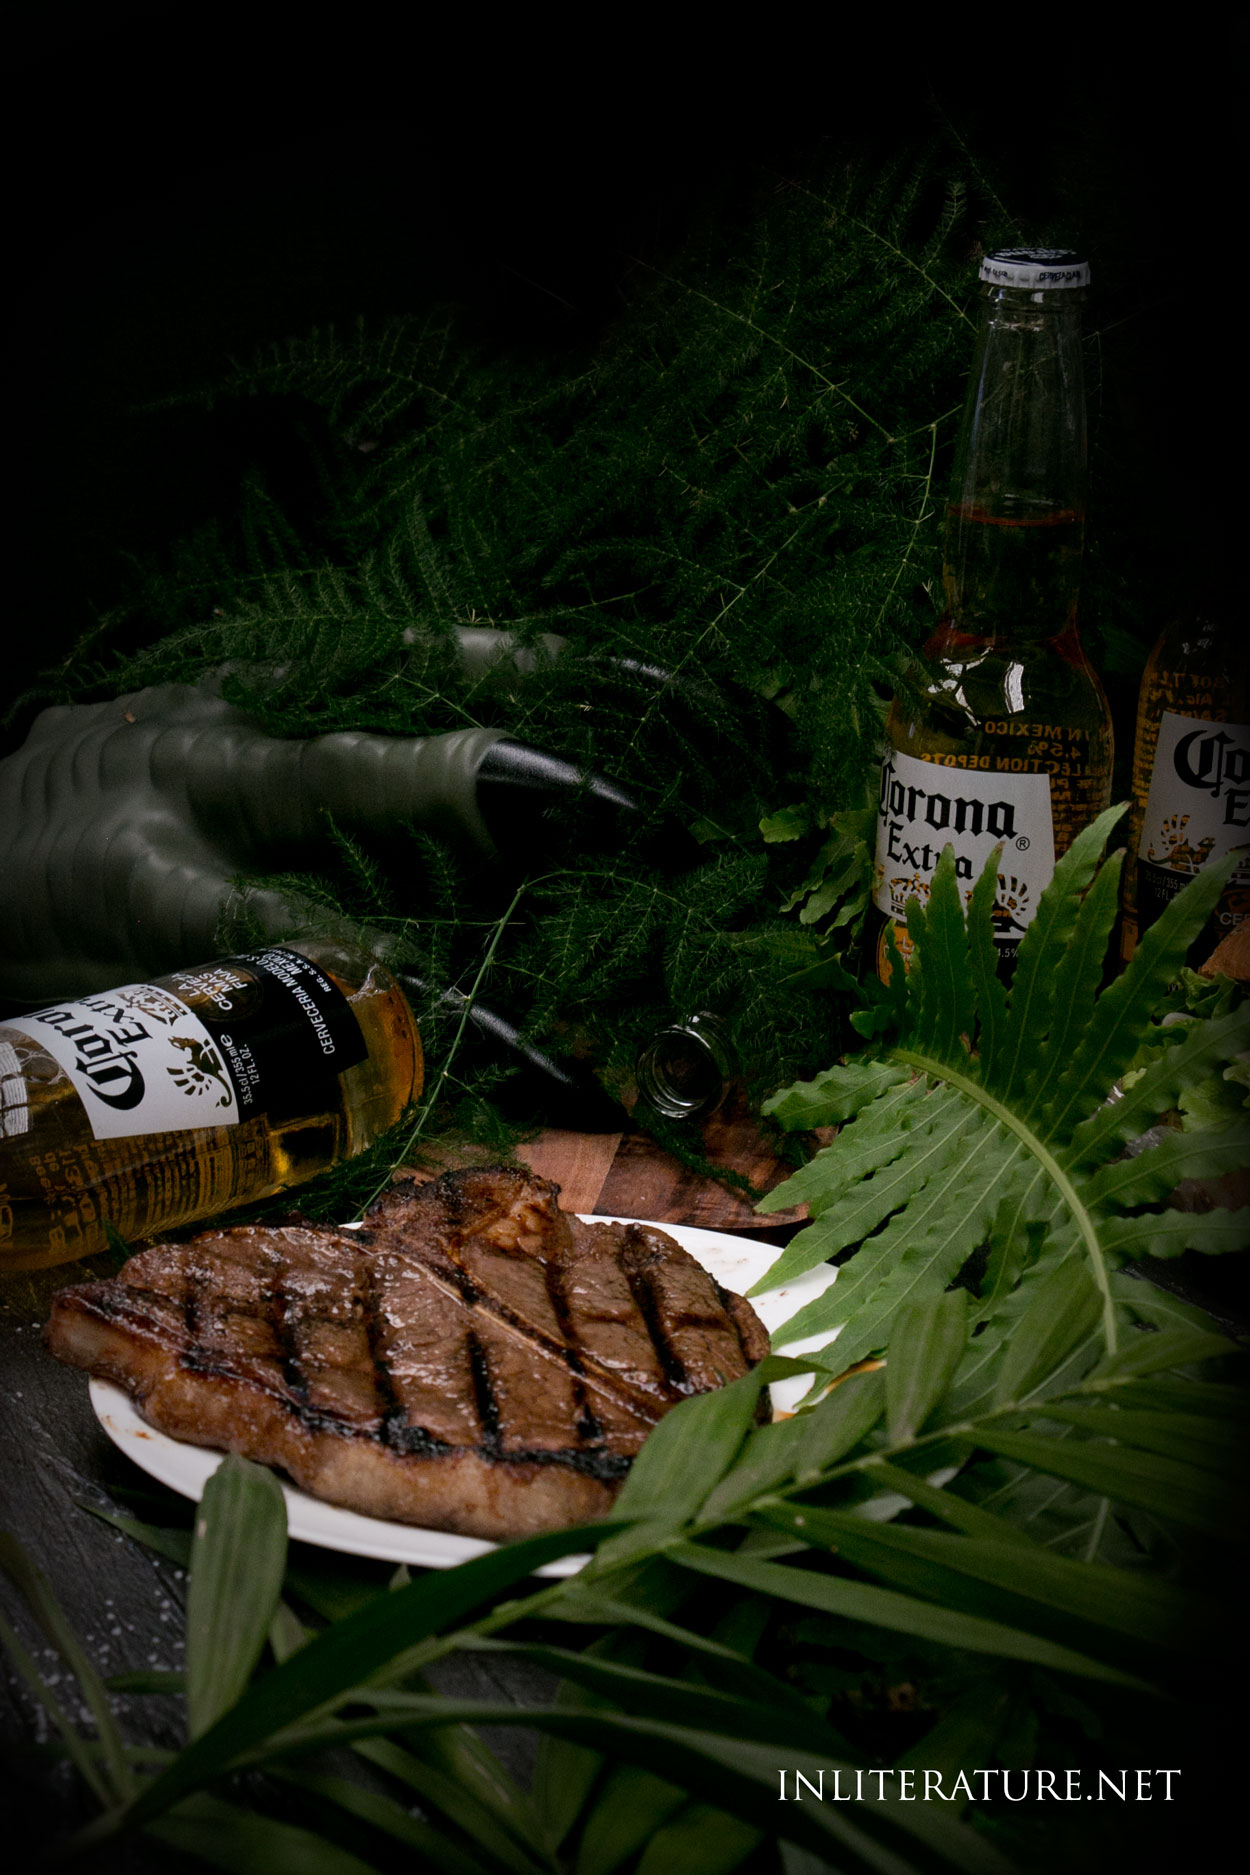 What dinosaur wouldn't love a nice juicy T-bone steak? serve this up on your next Jurassic Park party menu.